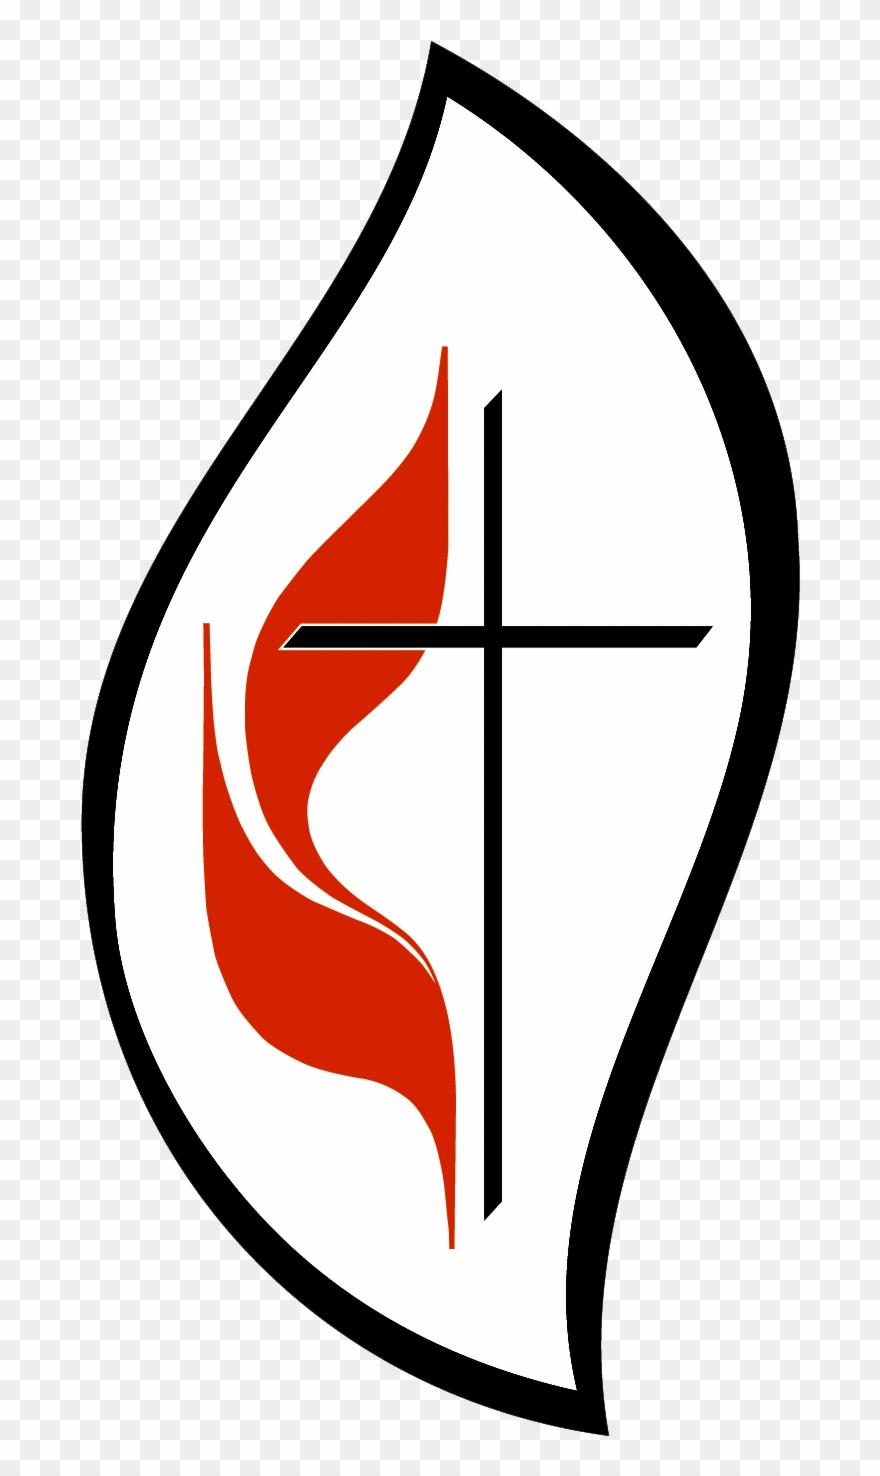 Methodist church clipart banner free library United Methodist Church Clipart (#1449376) - PinClipart banner free library